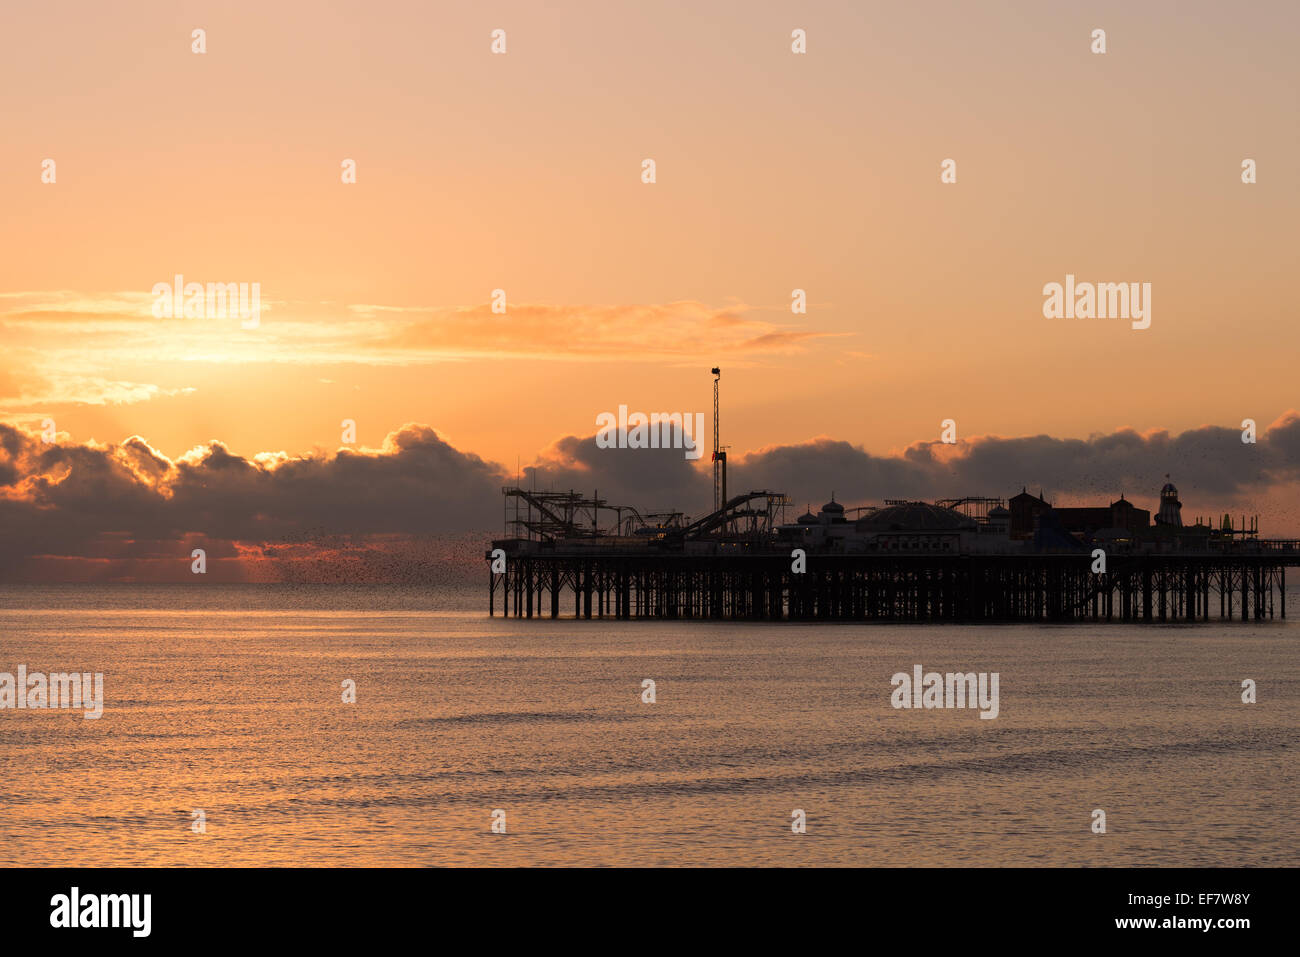 Setting sun behind the silhouette of the Palace Pier Stock Photo